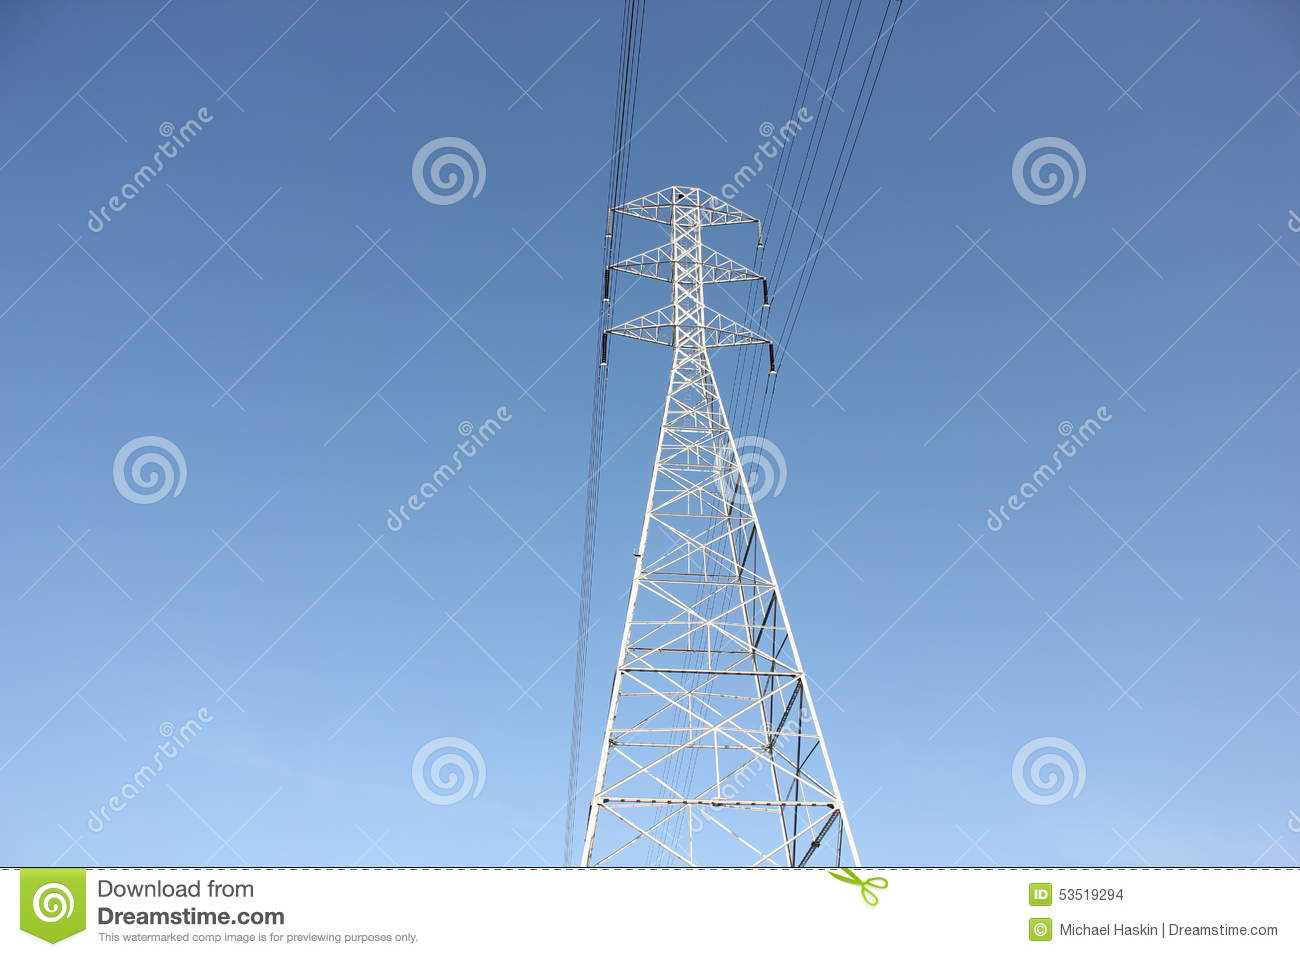 Transmission tower with blue sky